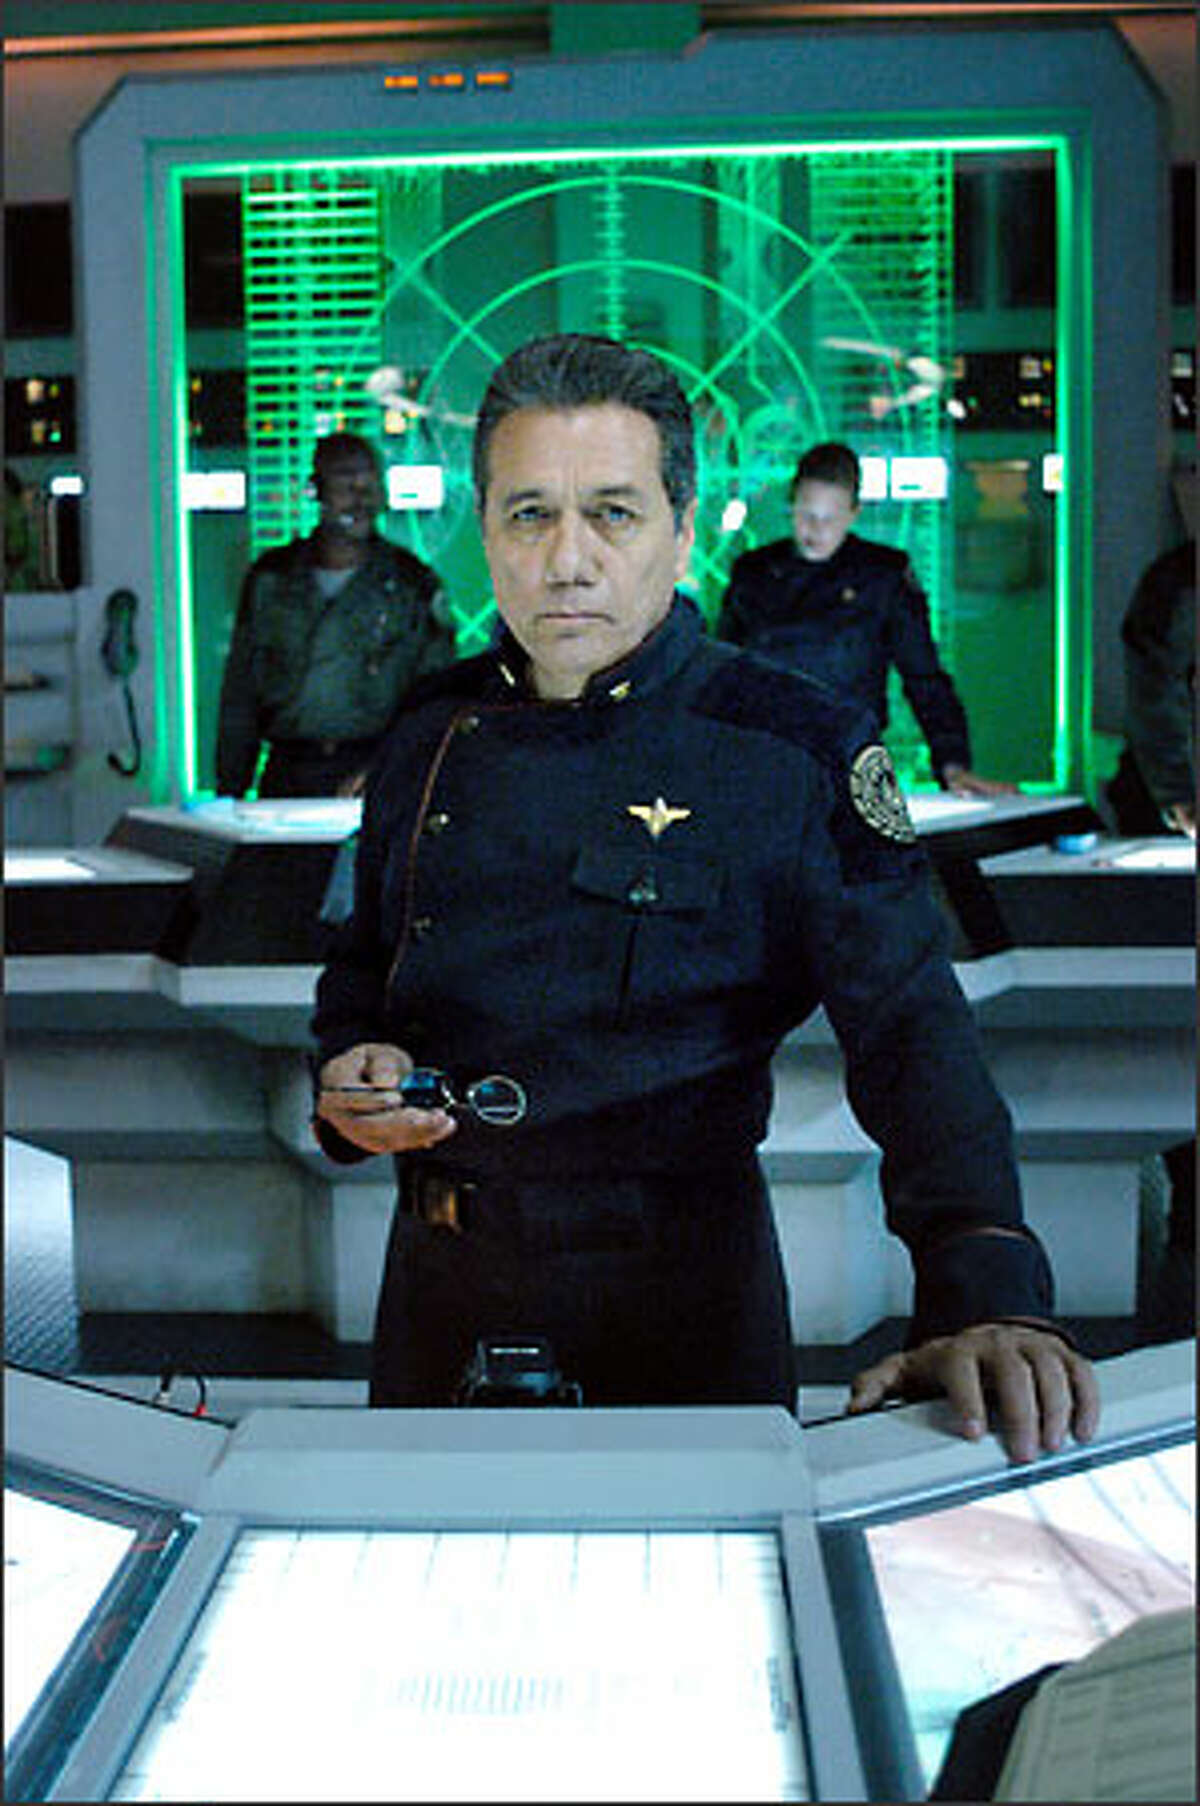 """William Adama (Edward James Olmos), commander of Galactica, the last Colonial battlestar, leads the survivors of the Cylon attack on a quest for the legendary lost human colony called Earth. """"Battlestar Galactica"""" airs on the Sci-Fi Channel Dec. 8-9, 2003."""